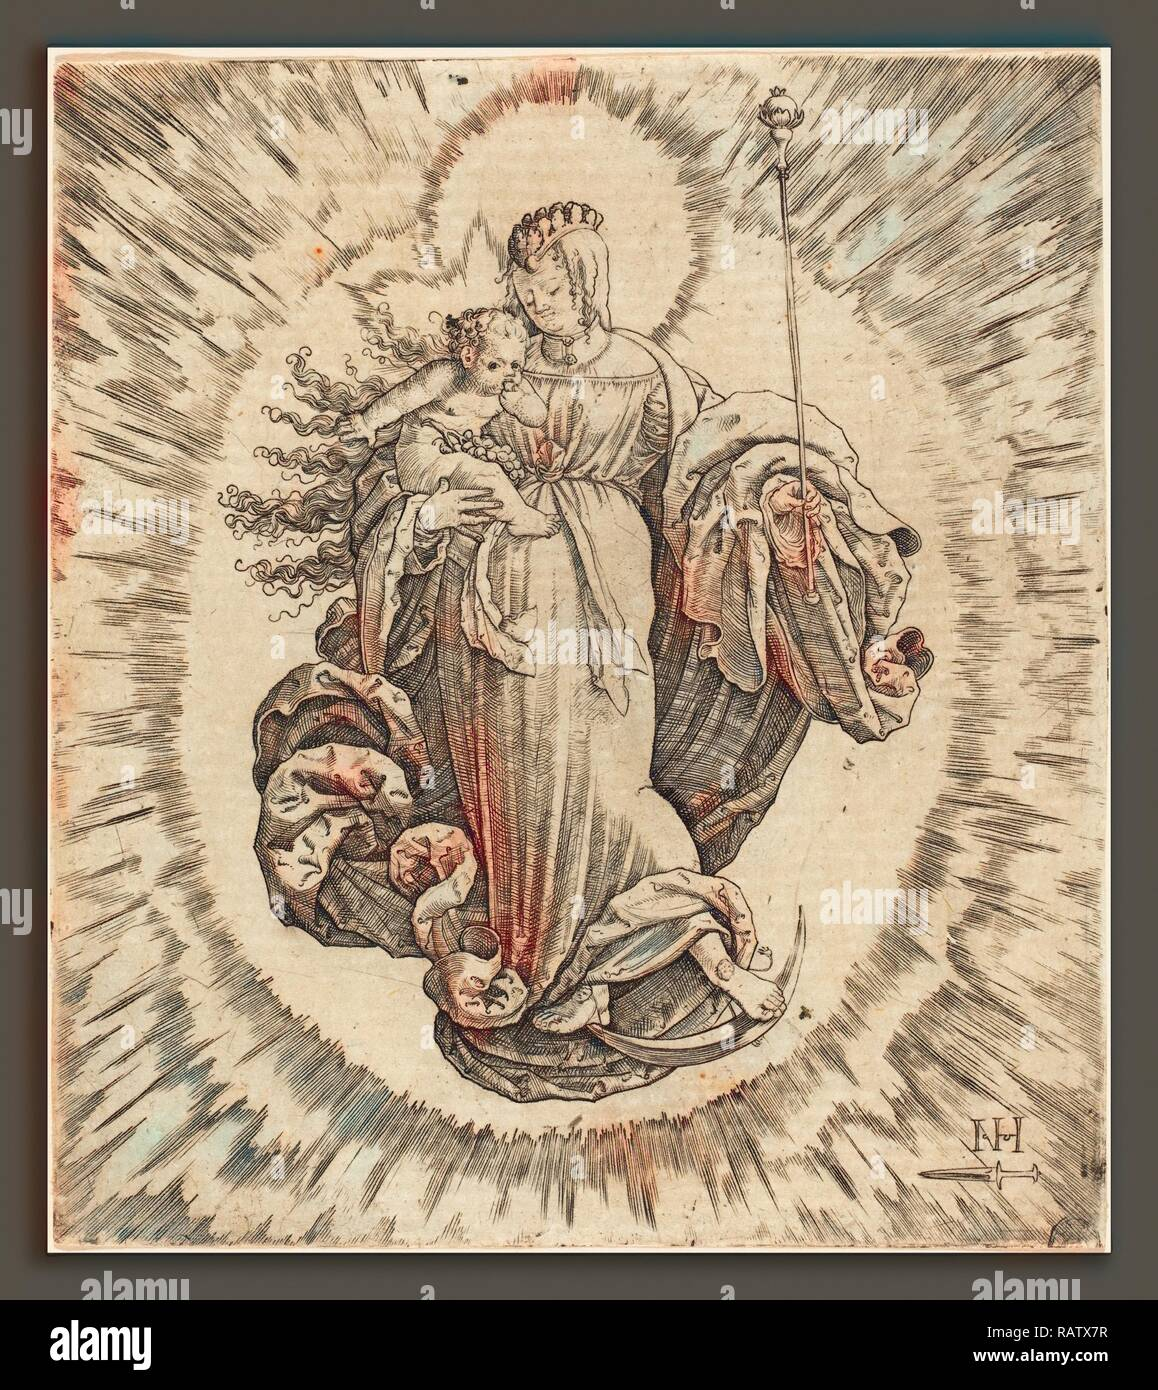 Master N.H. with the Dagger (German, active first half 16th century), Madonna on a Crescent, engraving. Reimagined - Stock Image